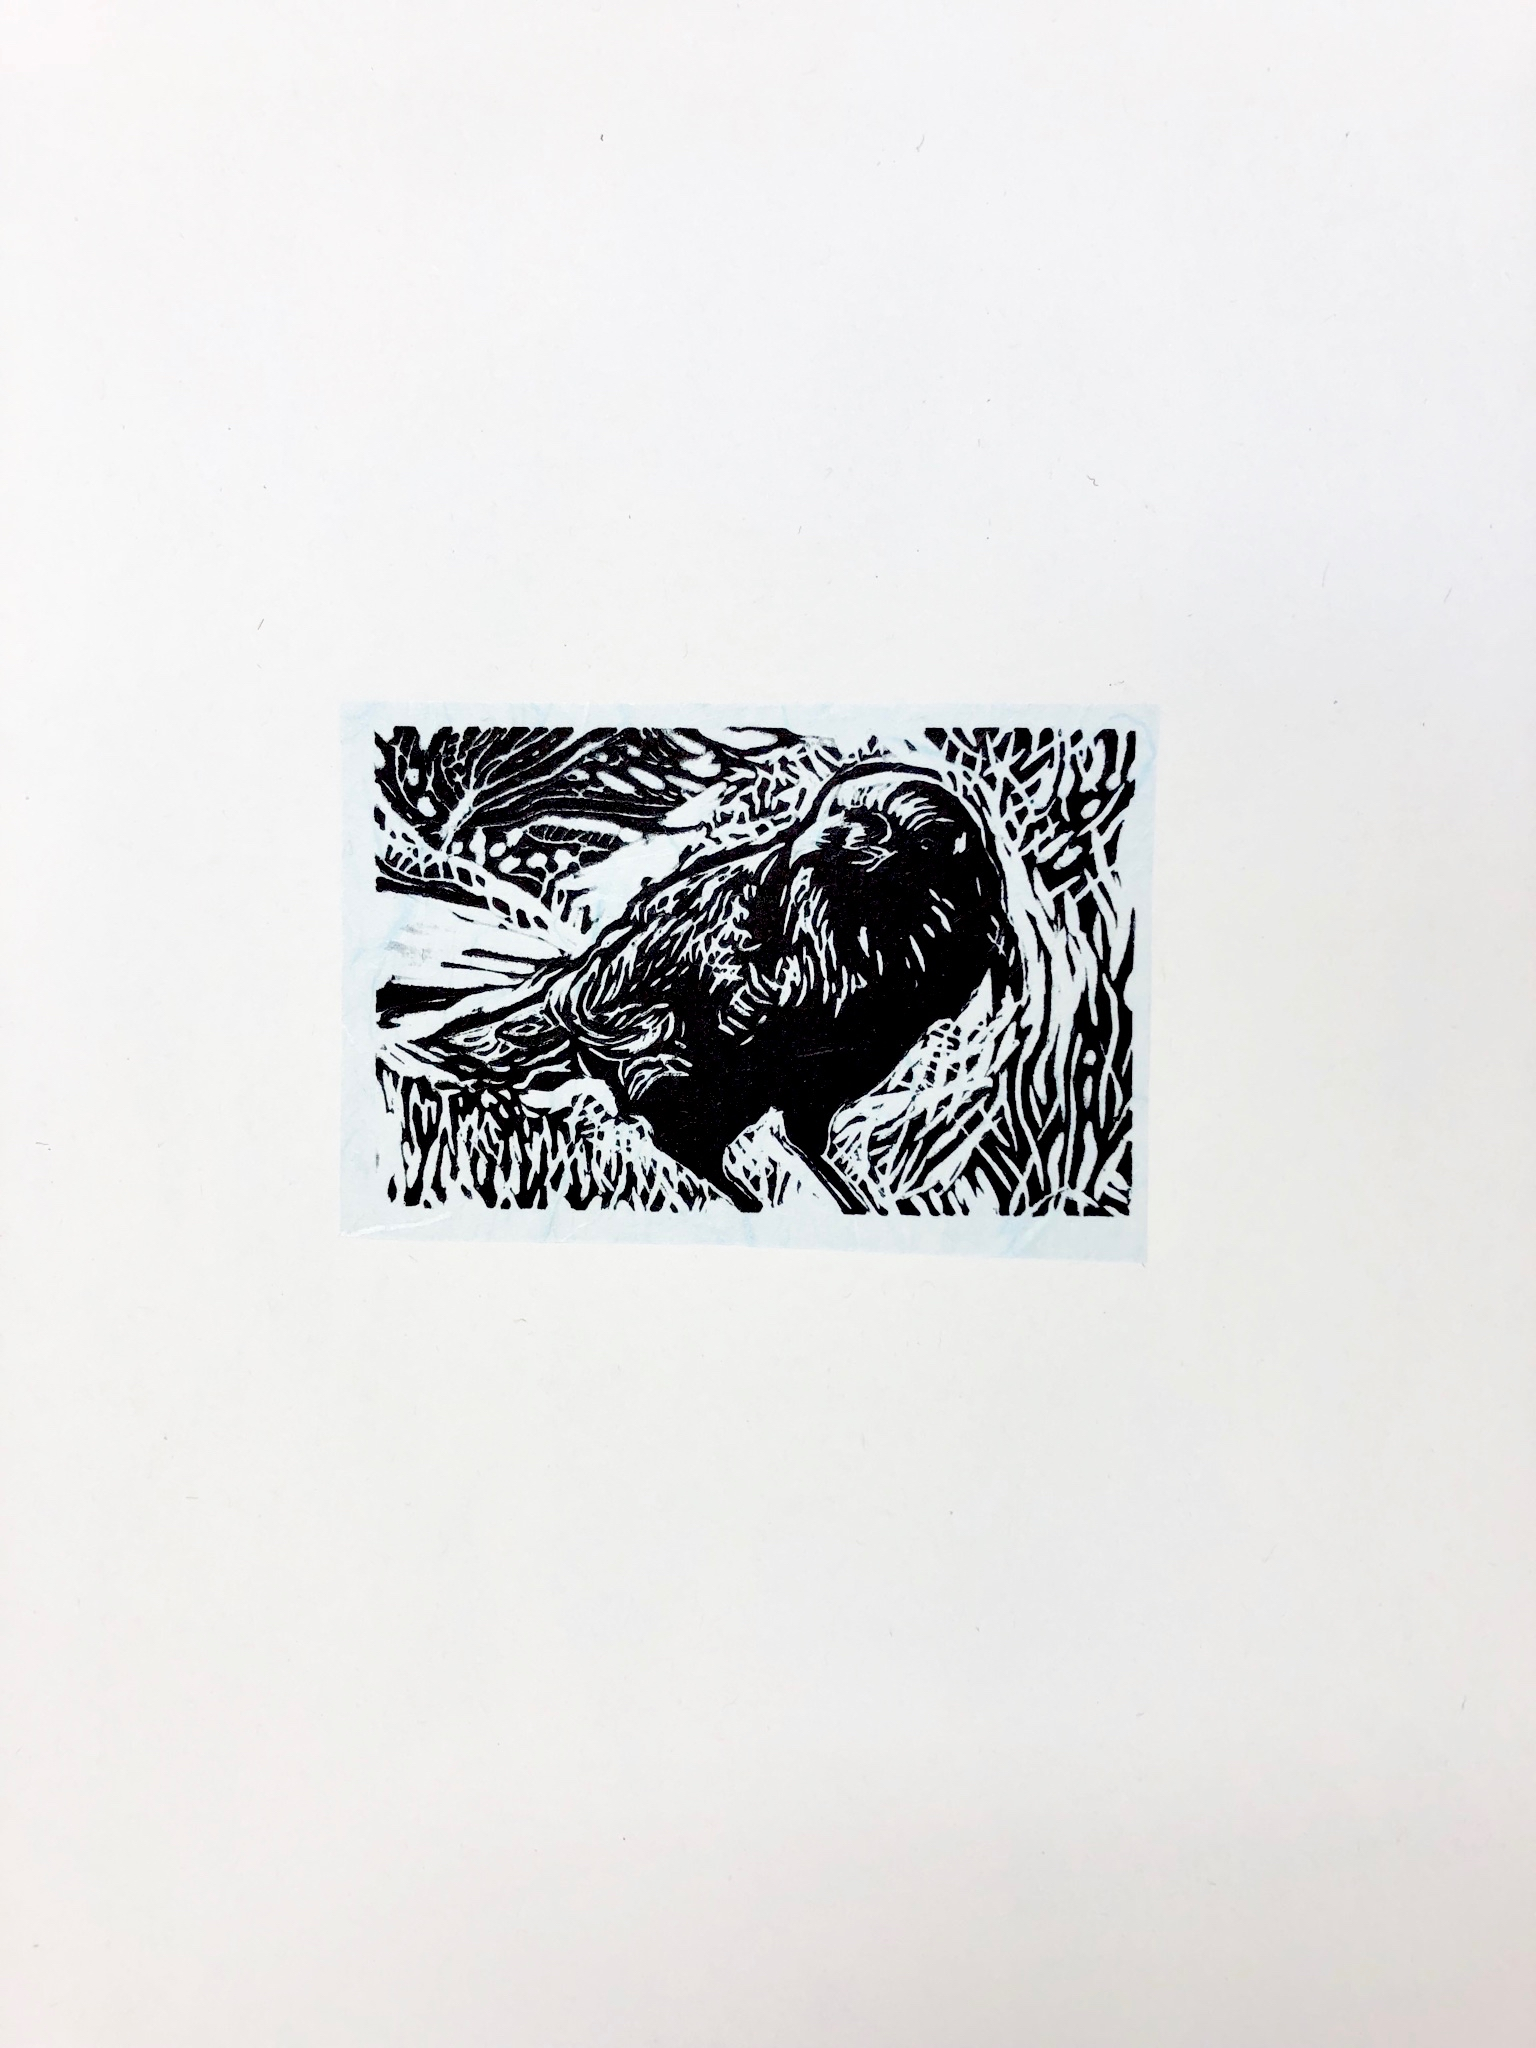 Encounter on the Path, Raven - Sequoia National Park - woodcut print